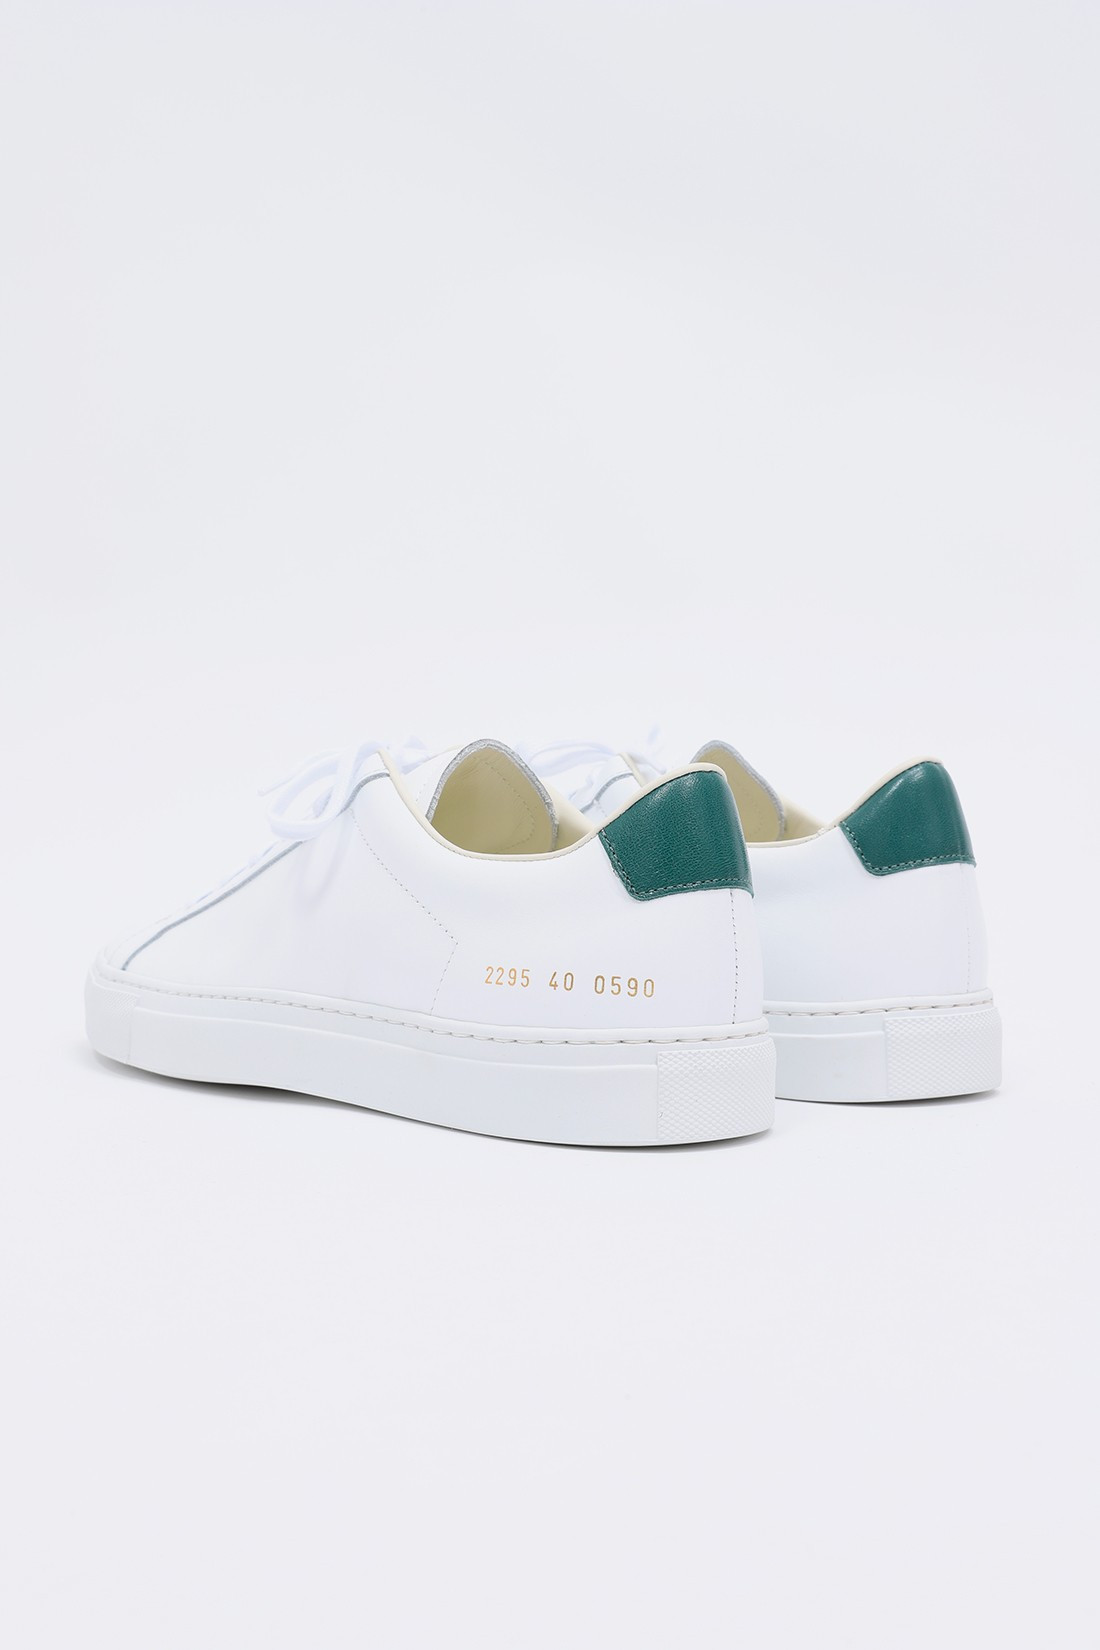 COMMON PROJECTS / Retro low 2295 White/green